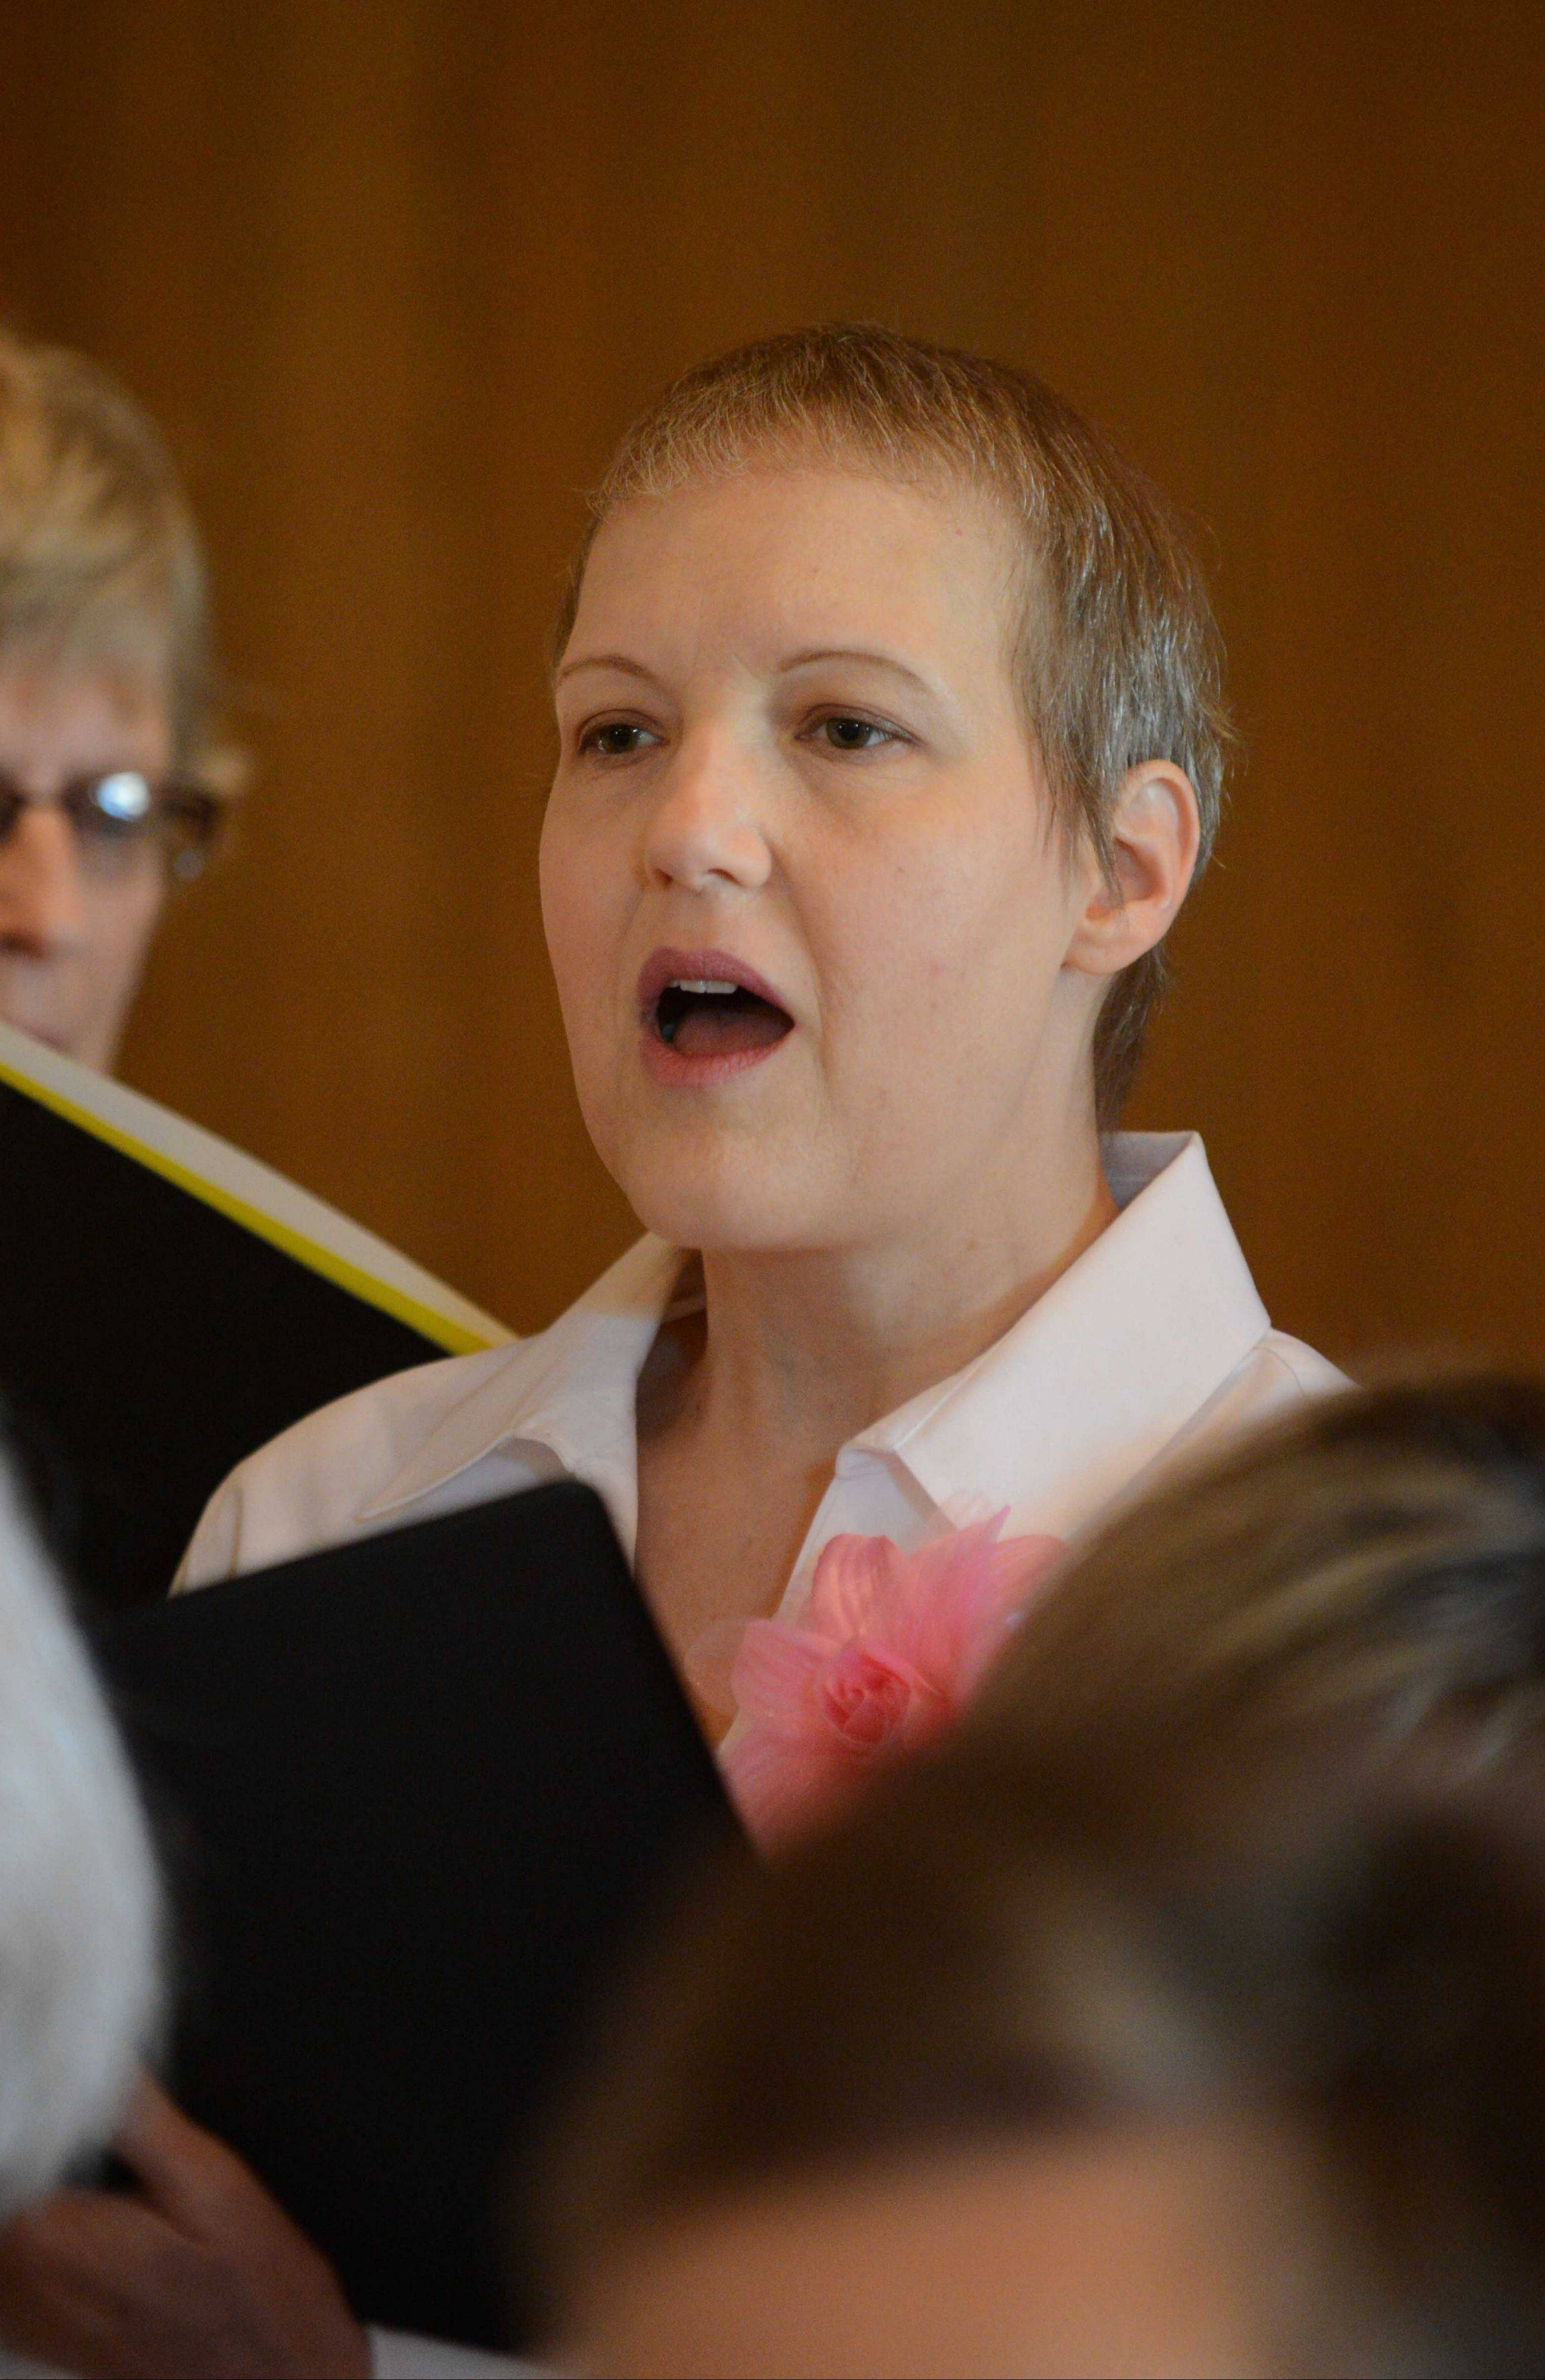 Jennifer Jones, diagnosed last year with breast cancer, has felt too self-conscious to sing with her church choir but finds comfort — and her voice — in singing with the Voices of Hope chorus.